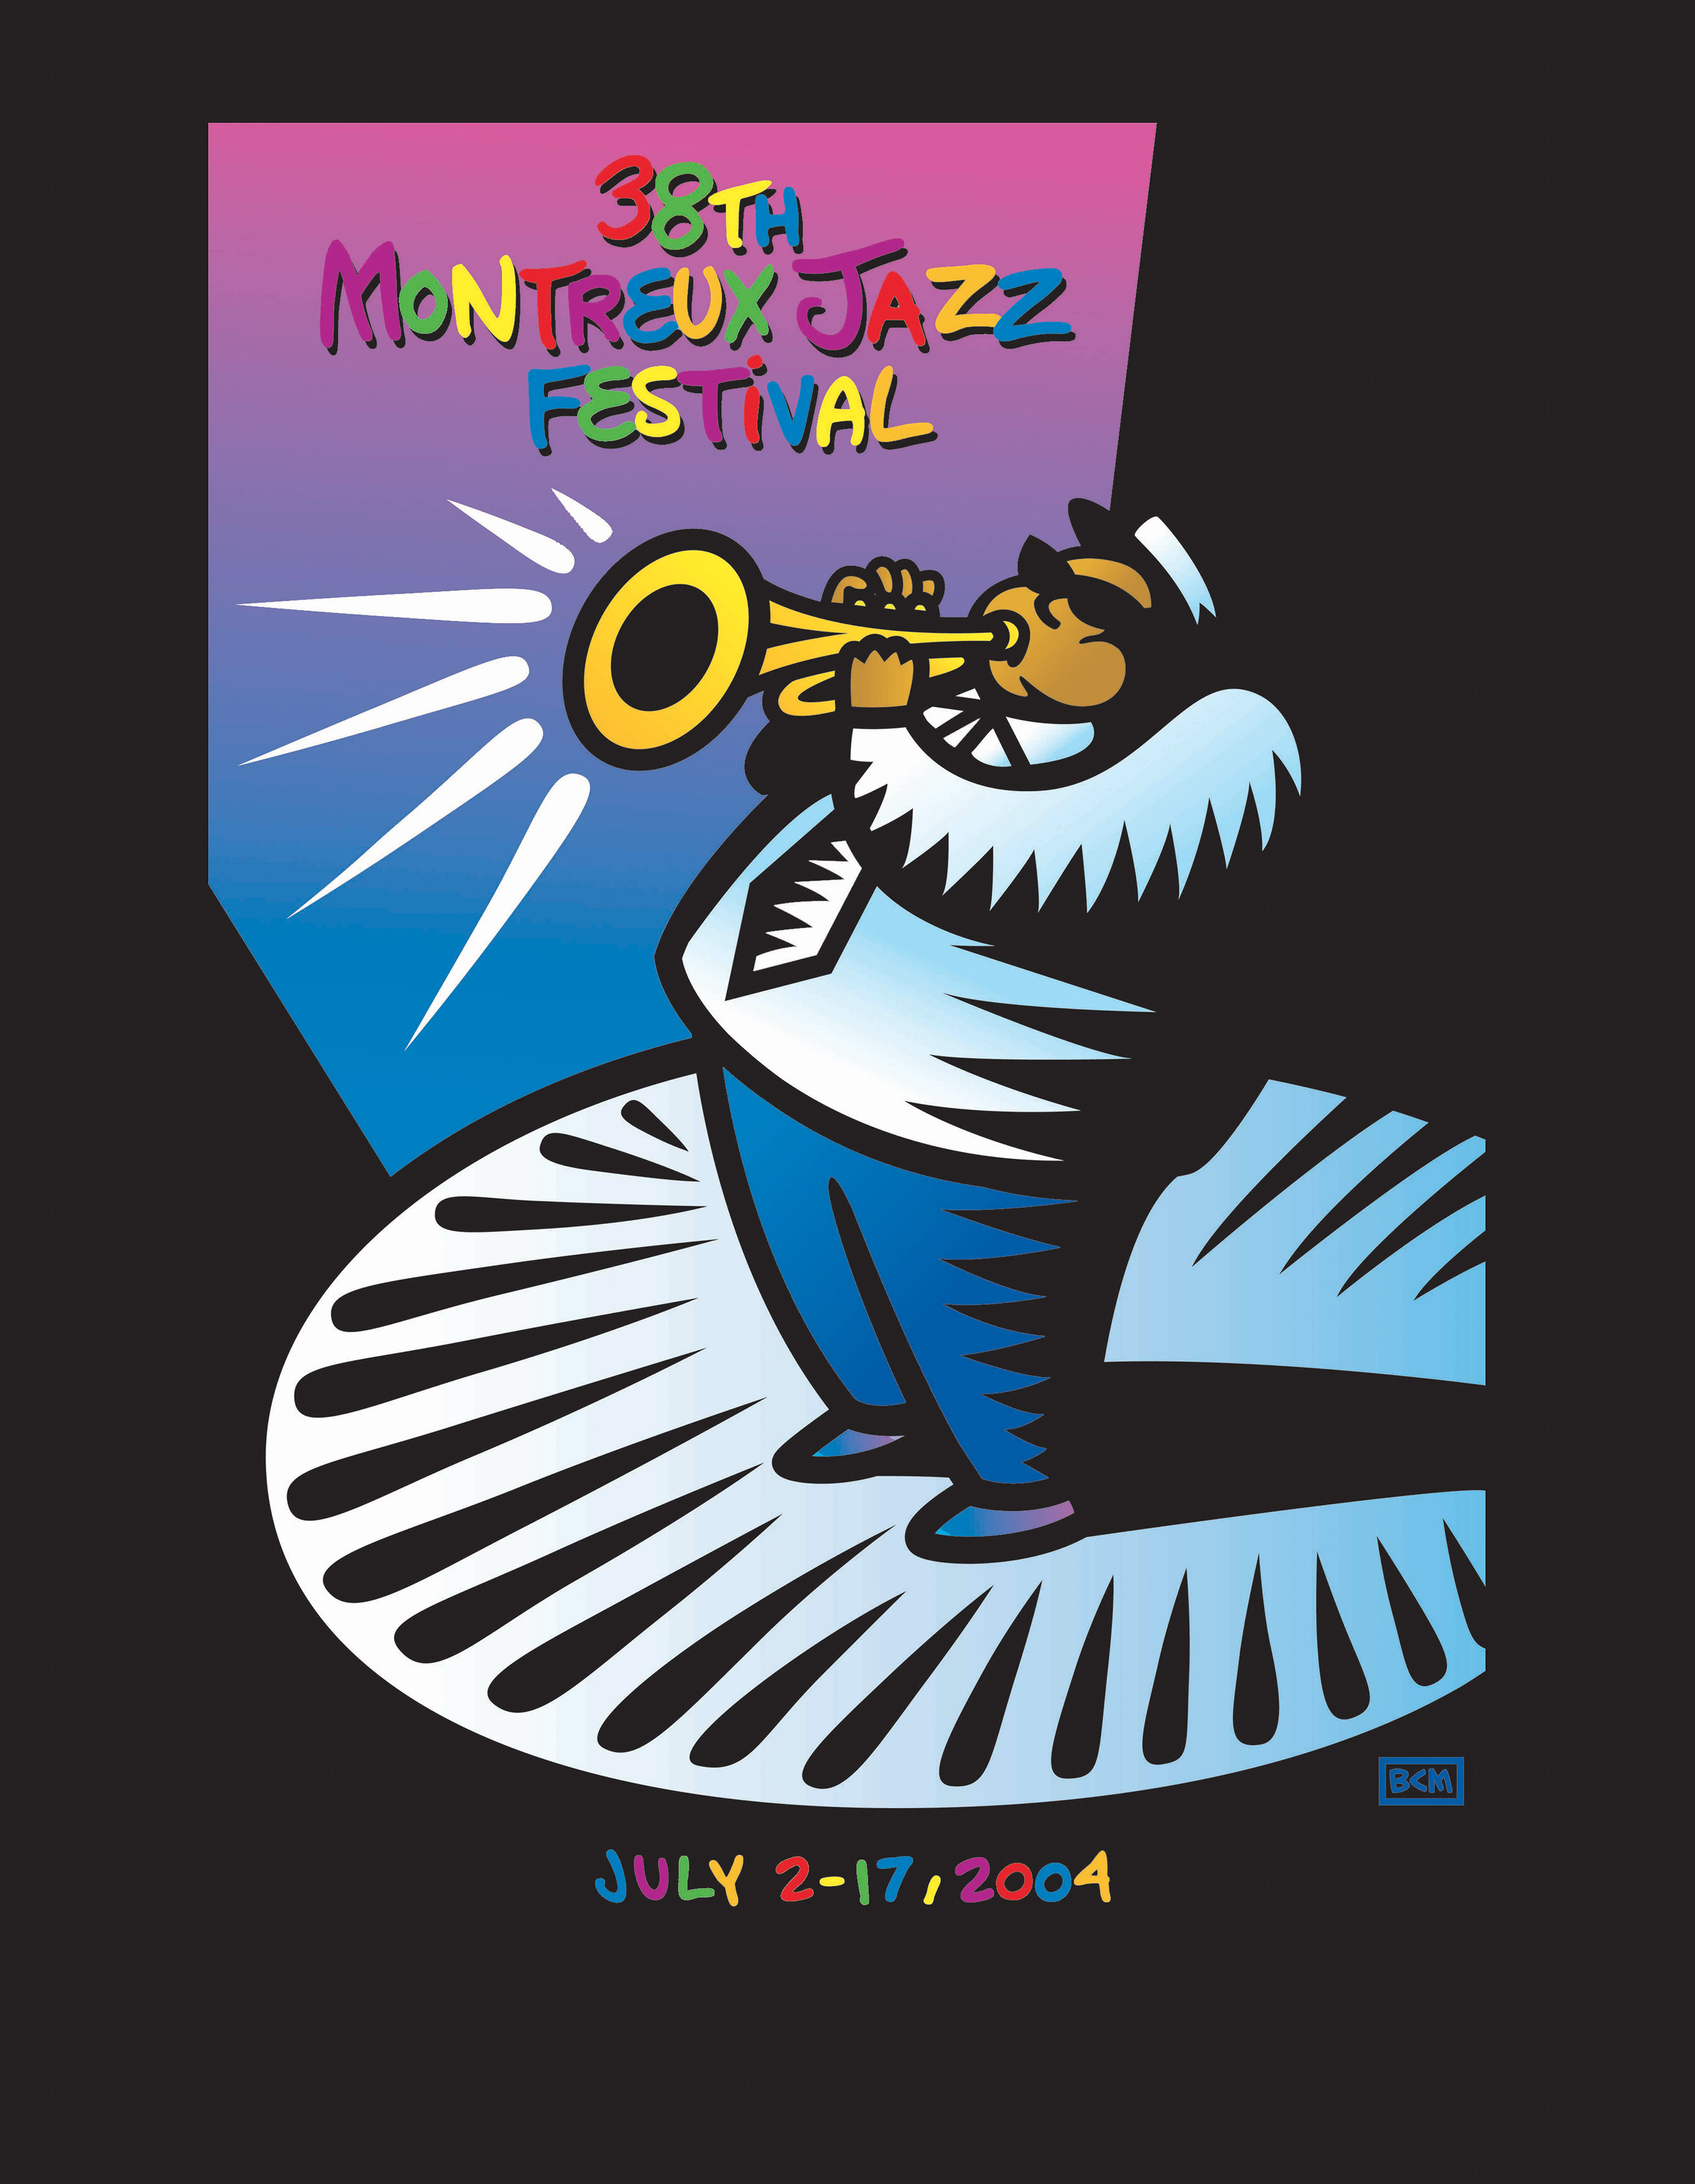 Montreux clipart #2, Download drawings